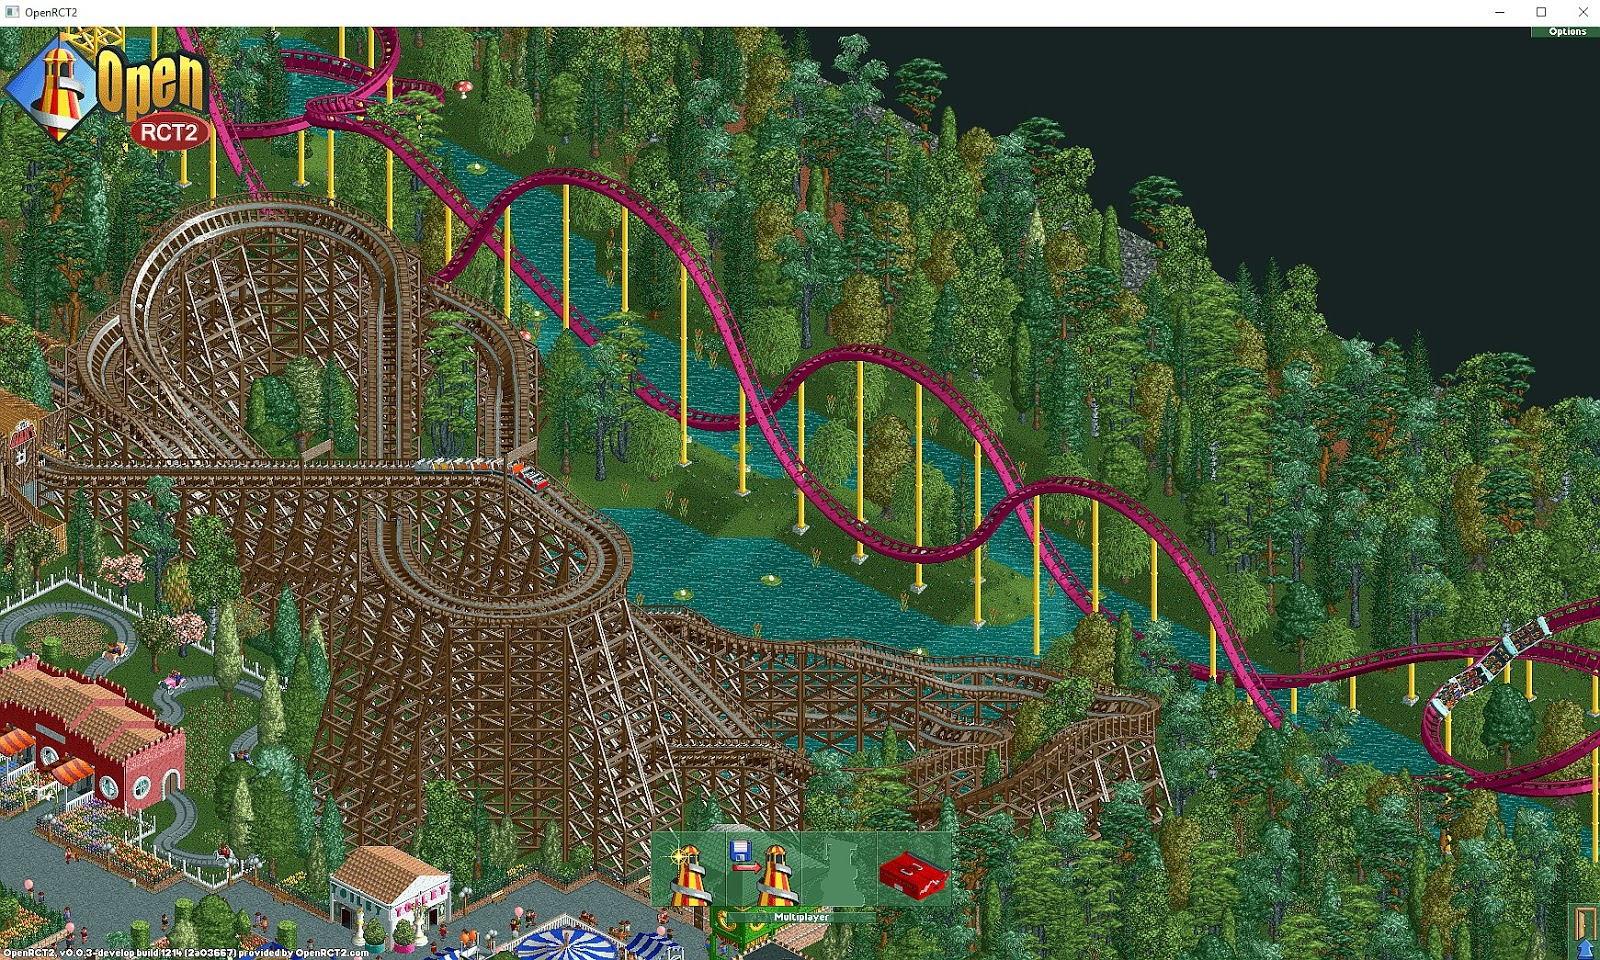 OpenRCT2 project - Open-Source adaption of RollerCoaster Tycoon 2, gets a beta release